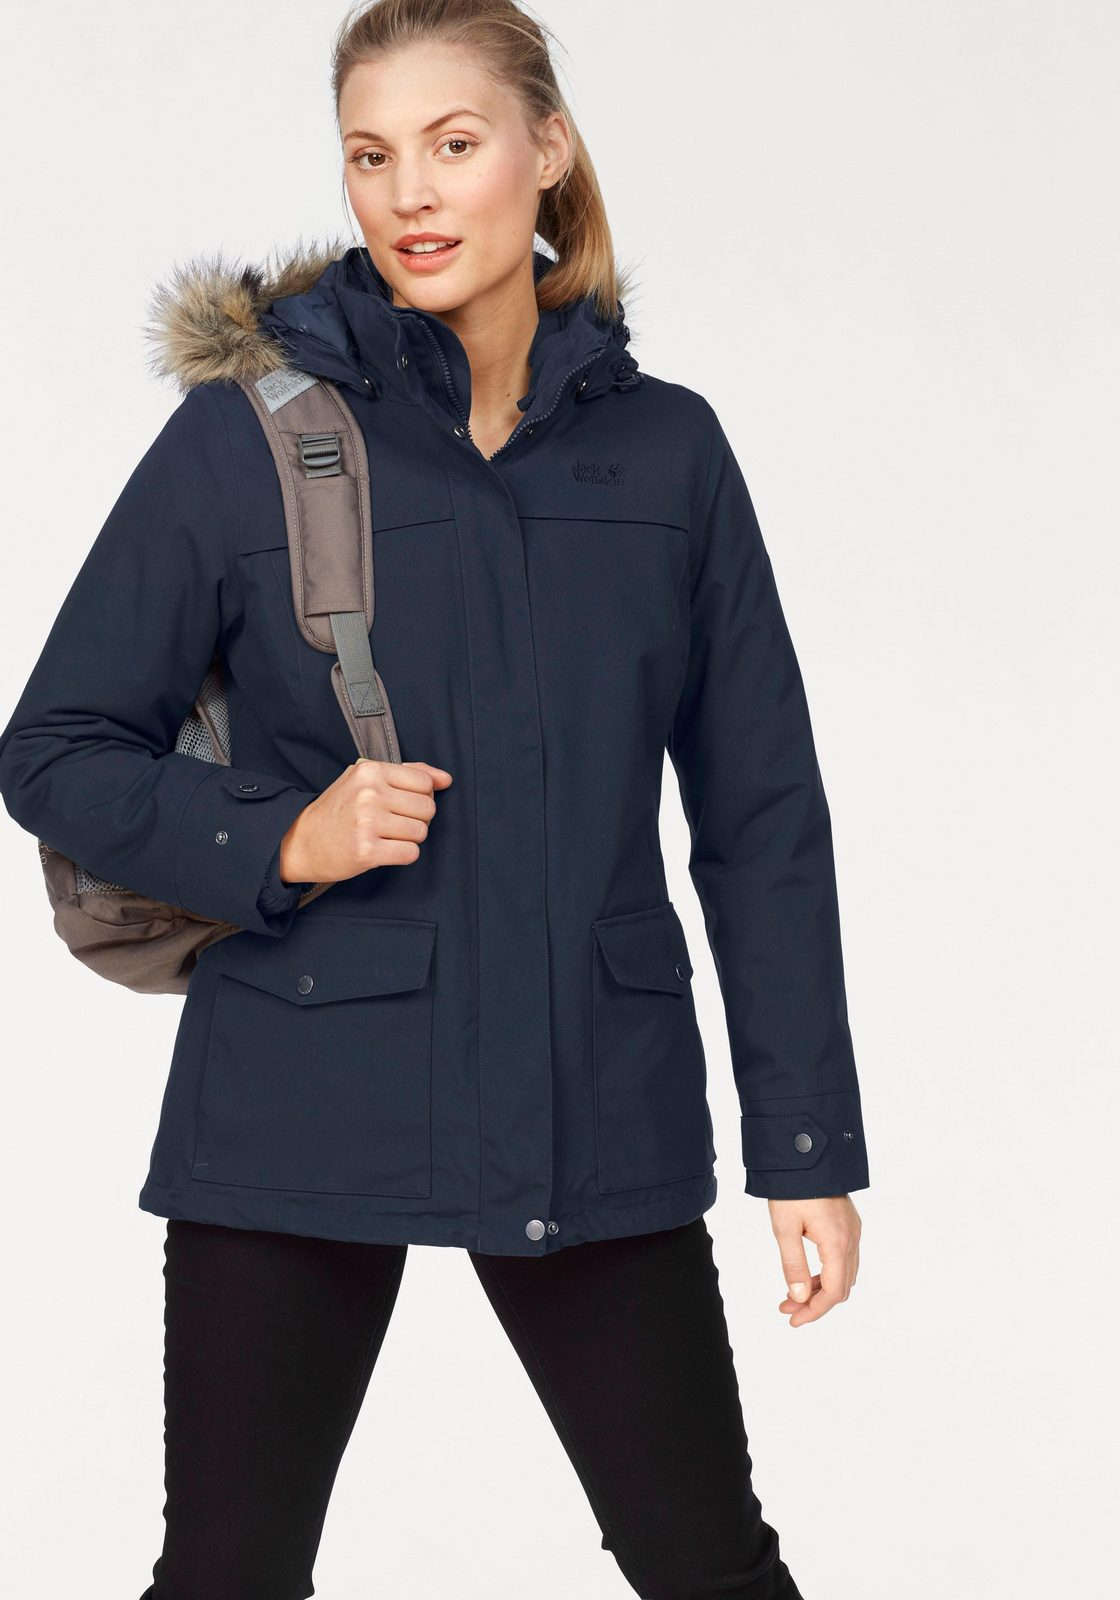 Jack Wolfskin 3-in-1-Funktionsjacke »ROCKY SHORE« (Set, 2 tlg), aus der 3-in-1-Regular-System-Serie